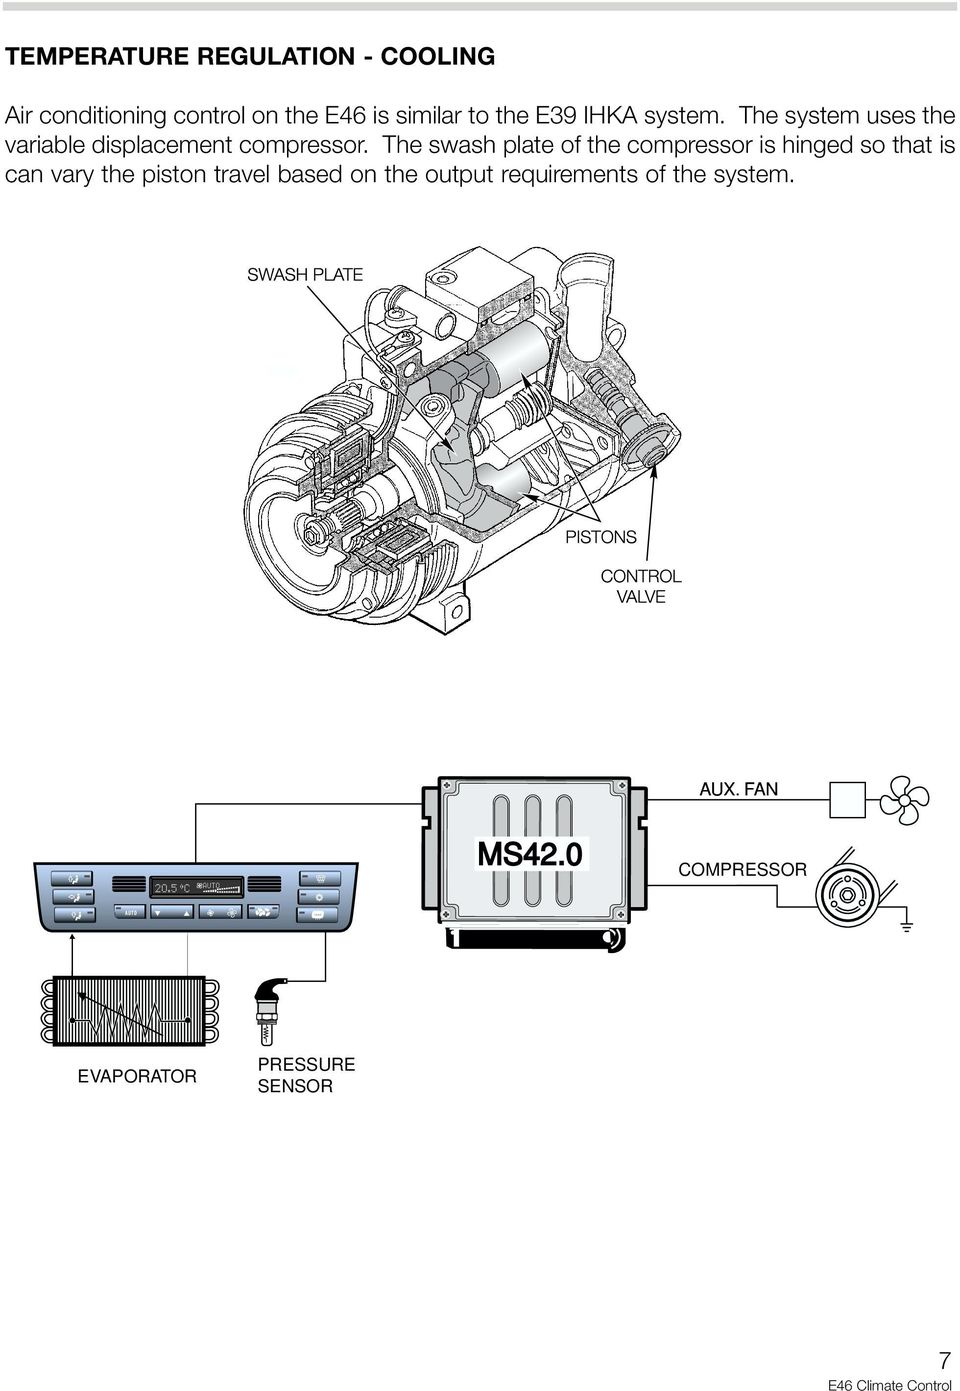 E46 Ihka Control Panel Fresh Air Micro Filter Temperature Regulation Fan Wiring Diagram The Swash Plate Of Compressor Is Hinged So That Can Vary Piston Travel